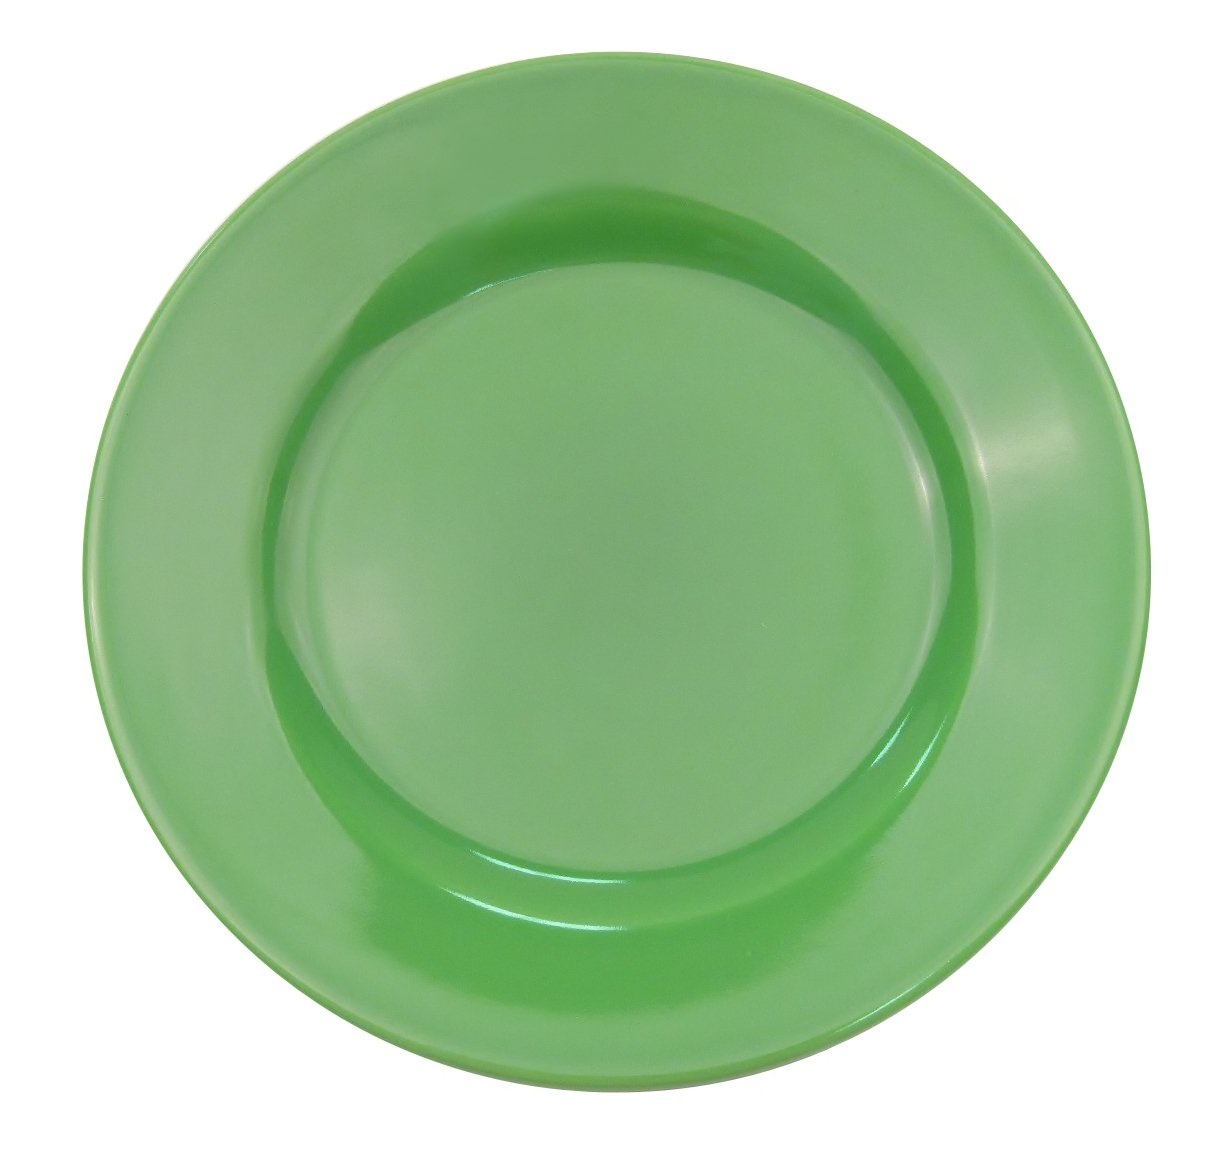 CAC China LV-7-G 7-1/4-Inch Las Vegas Rolled Edge Stoneware Plate, Green, Box of 36